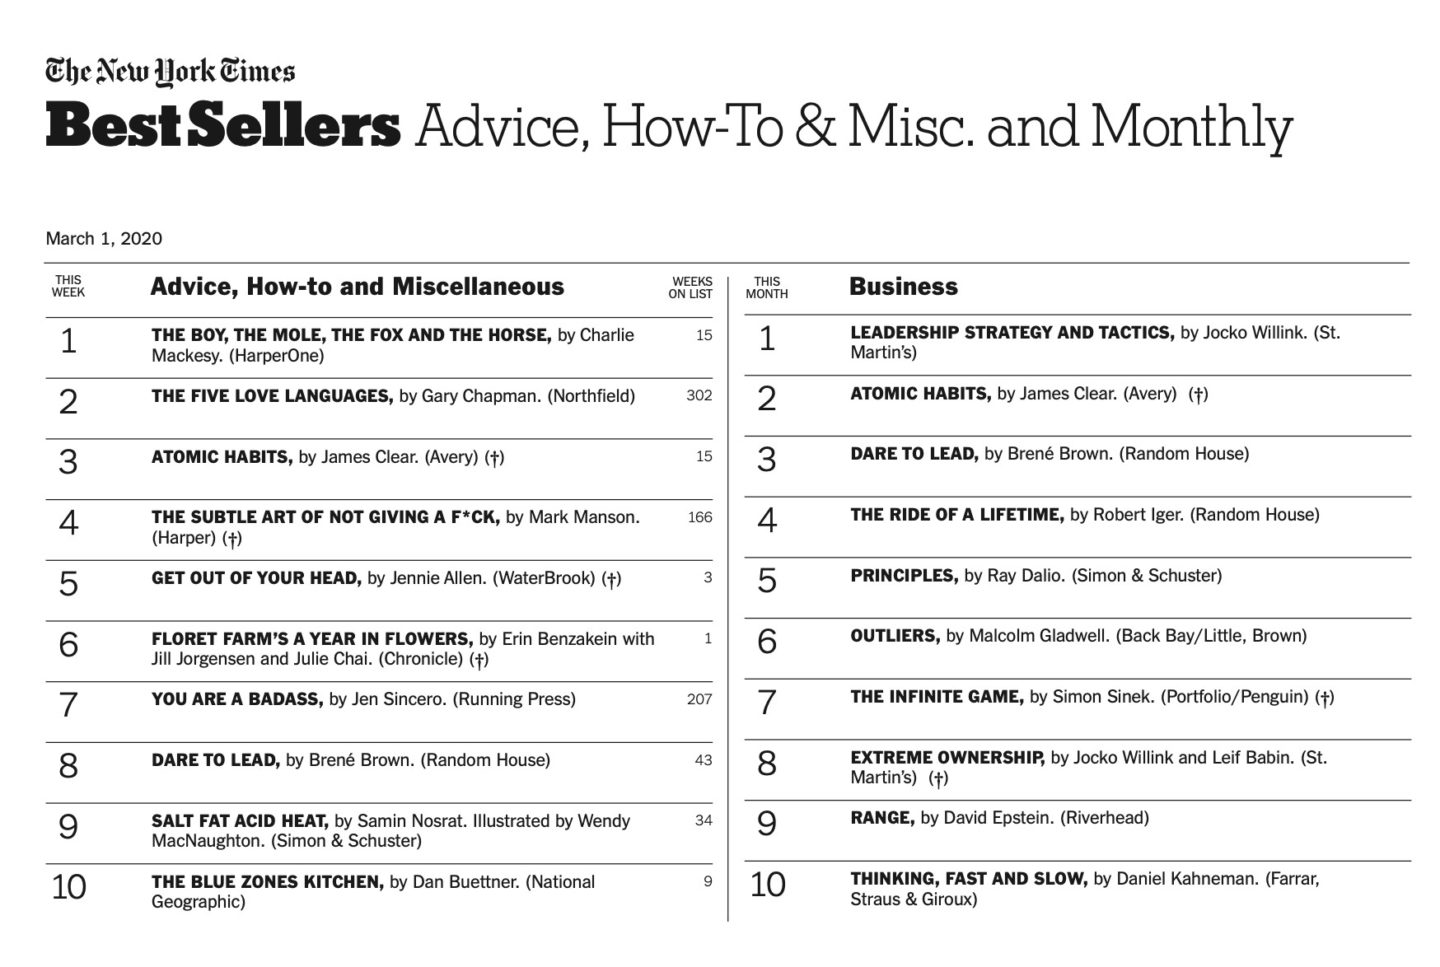 New York Times Bestseller List featuring A Year in Flowers